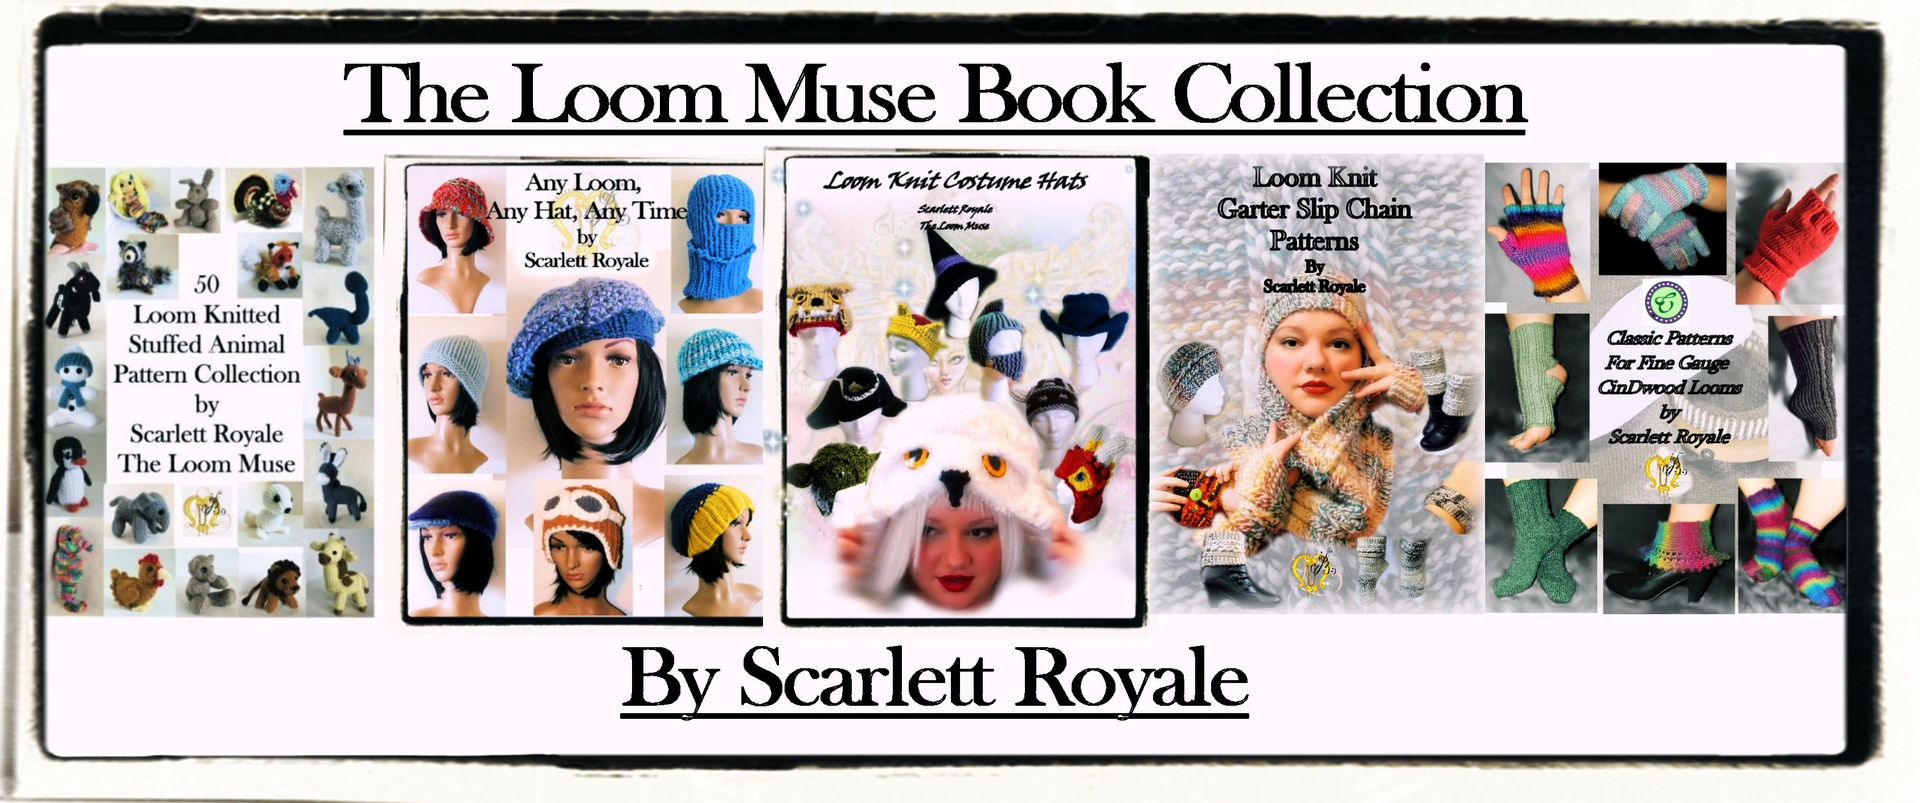 Scarlett Royale The Loom Muse - Home